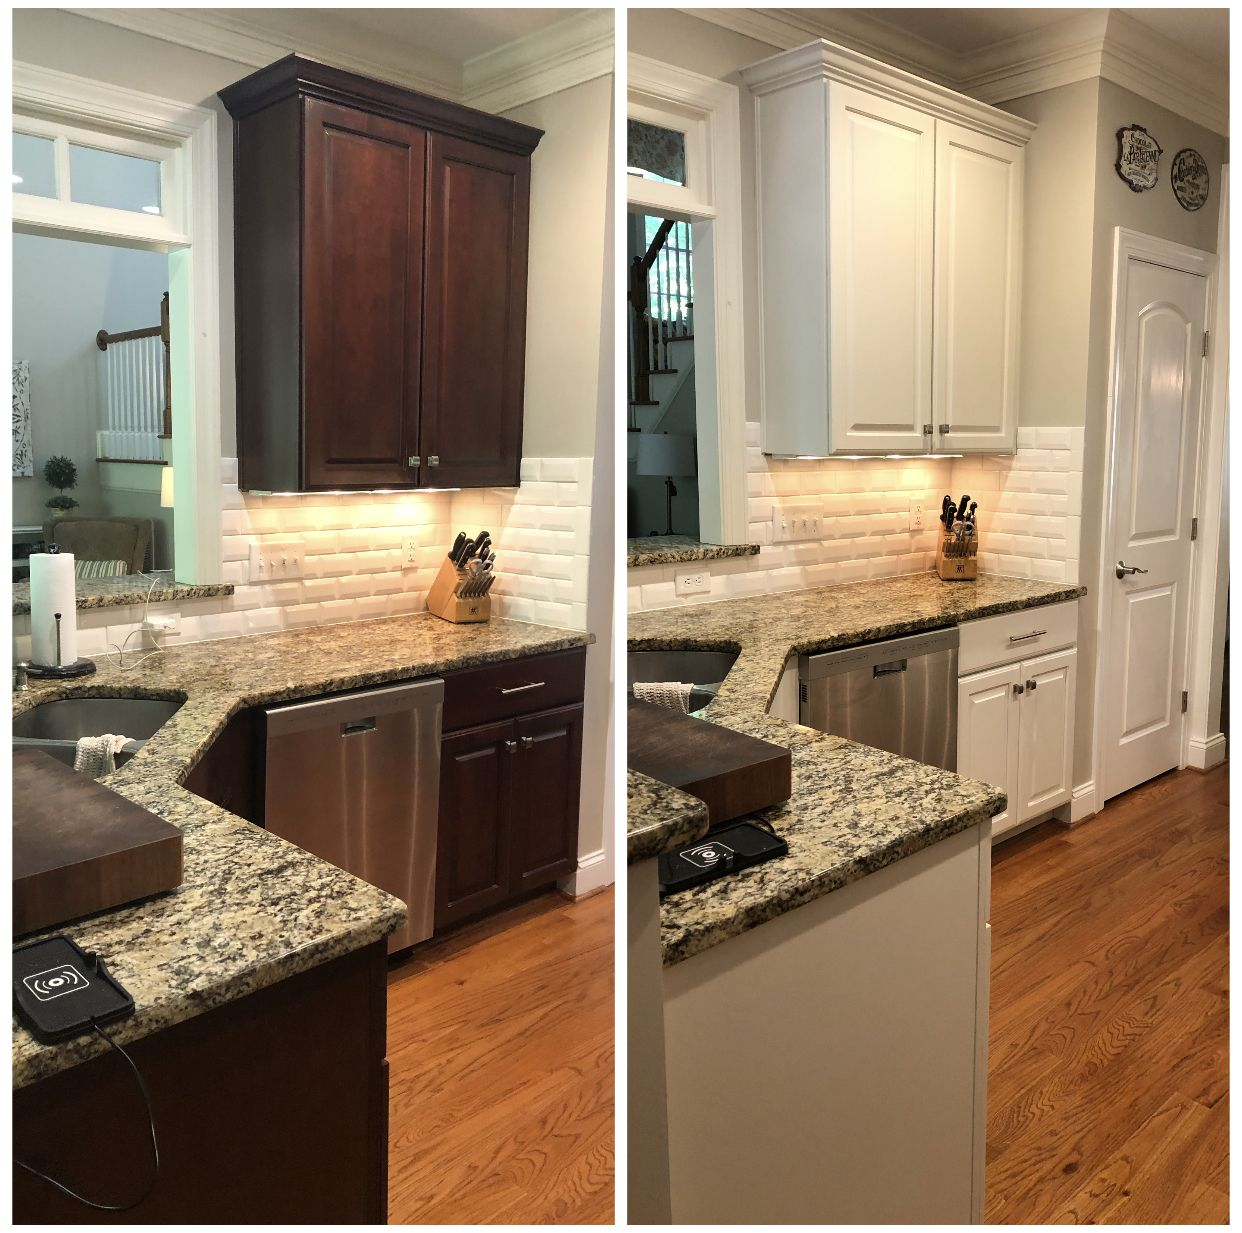 Painted Cabinets In 2020 Kitchen Cabinet Colors Kitchen Remodel Painting Cabinets